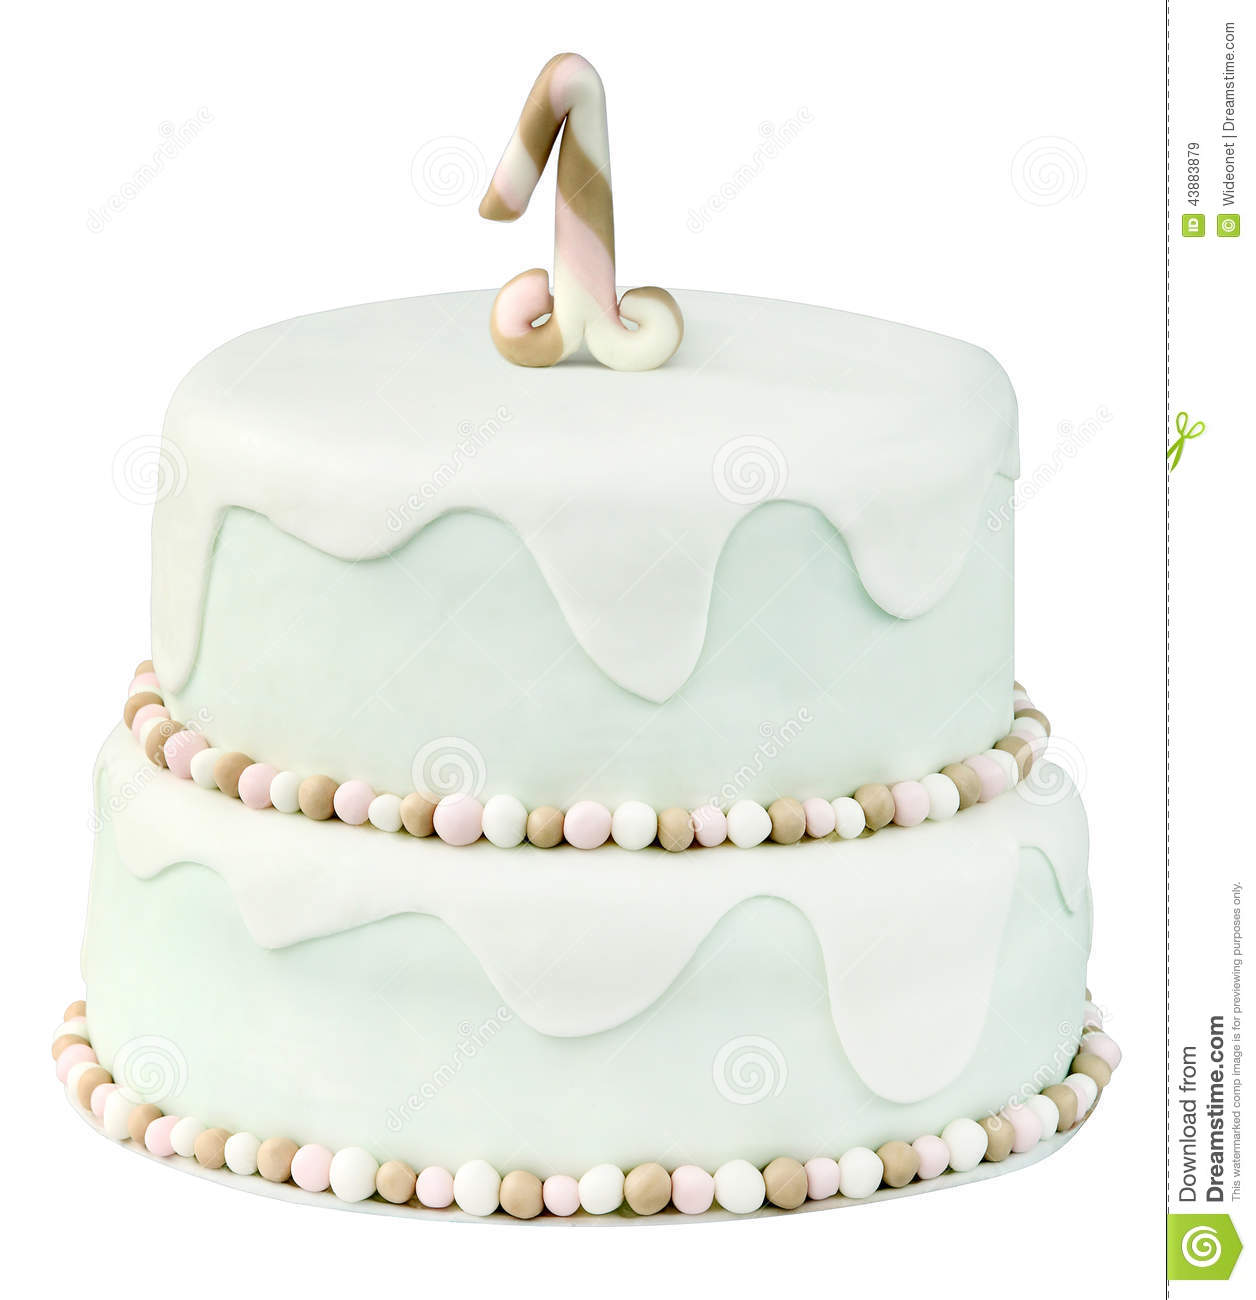 Birthday Cake Background Wit Wiring Diagrams Blazer Vacuum Diagram Http Wwwfixyacom Cars T11698649needvacuum First On White Stock Photo Happy With Without